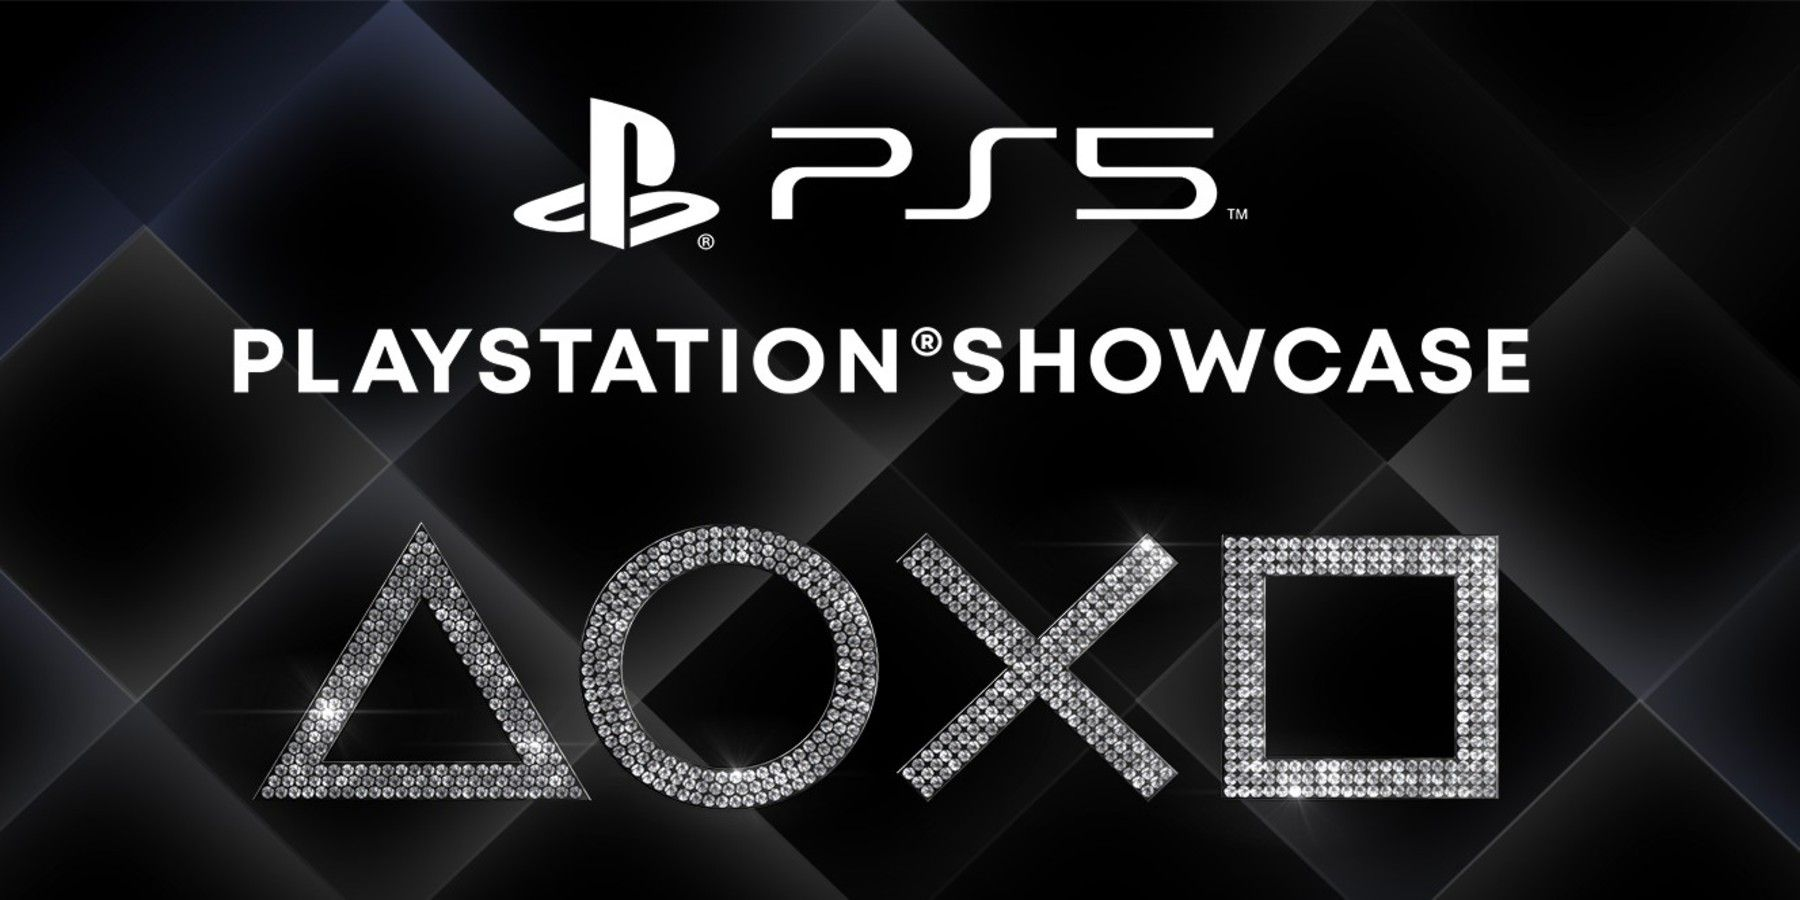 Why God of War Fans Should Keep an Eye on the PlayStation Showcase